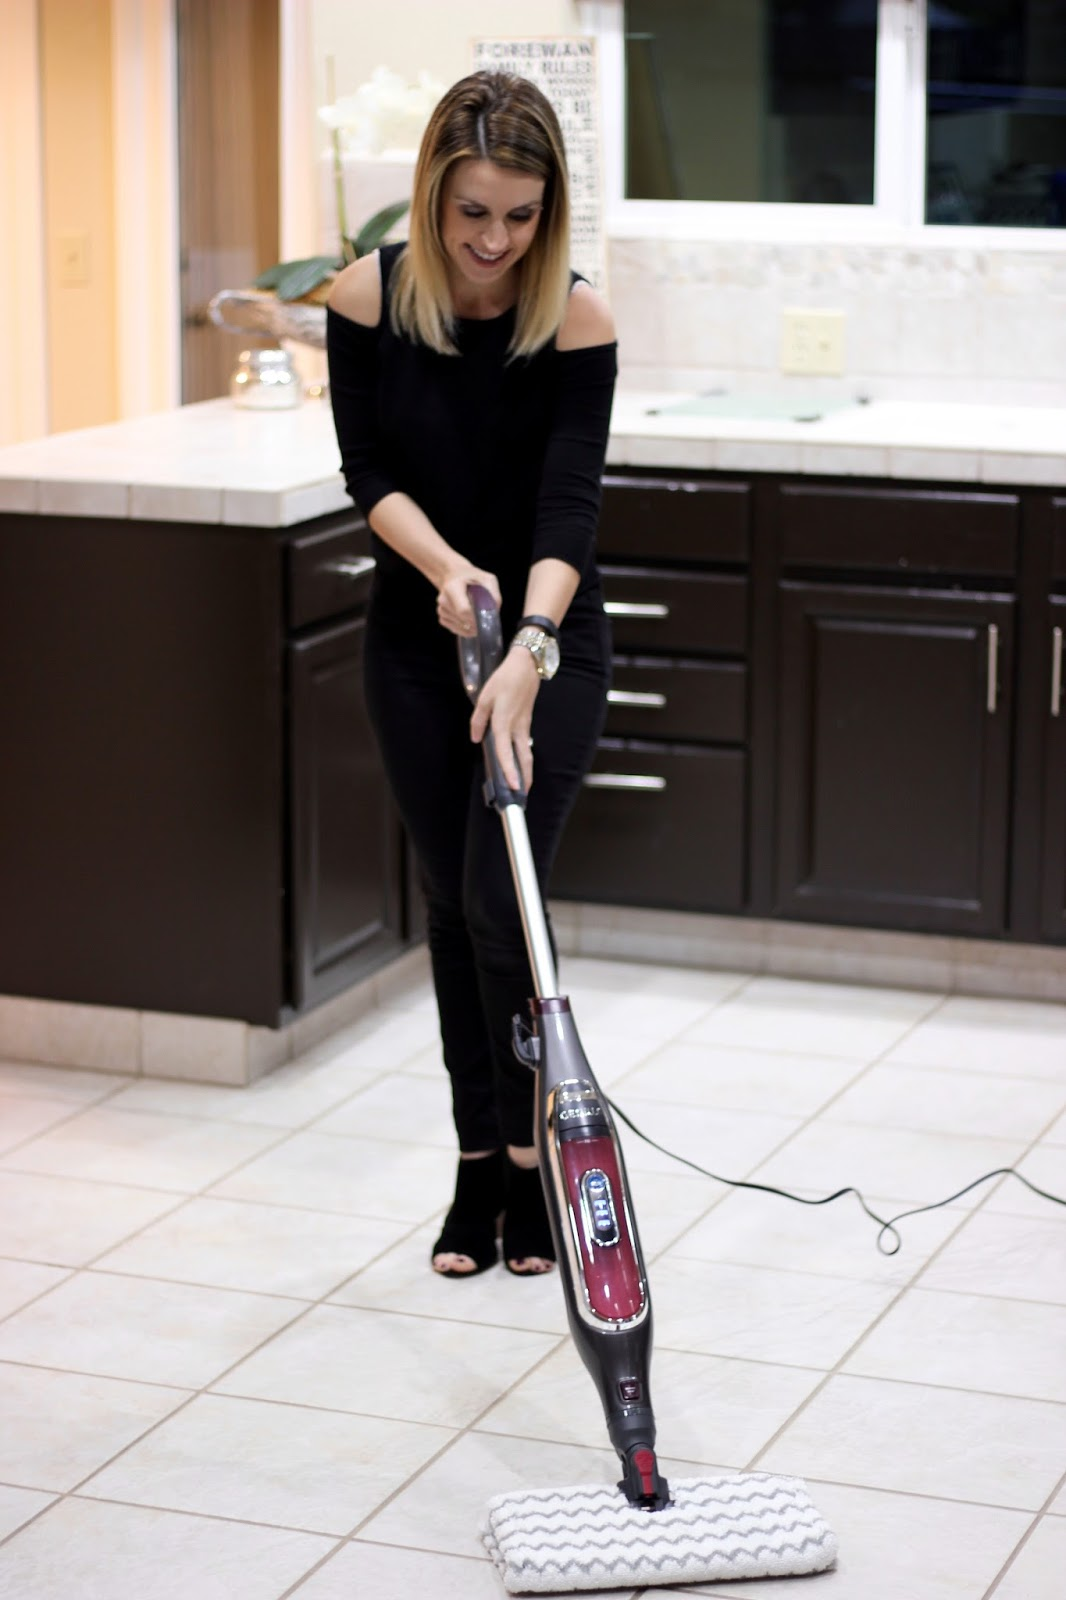 The Real Housewife Of Fresno Speed Cleaning